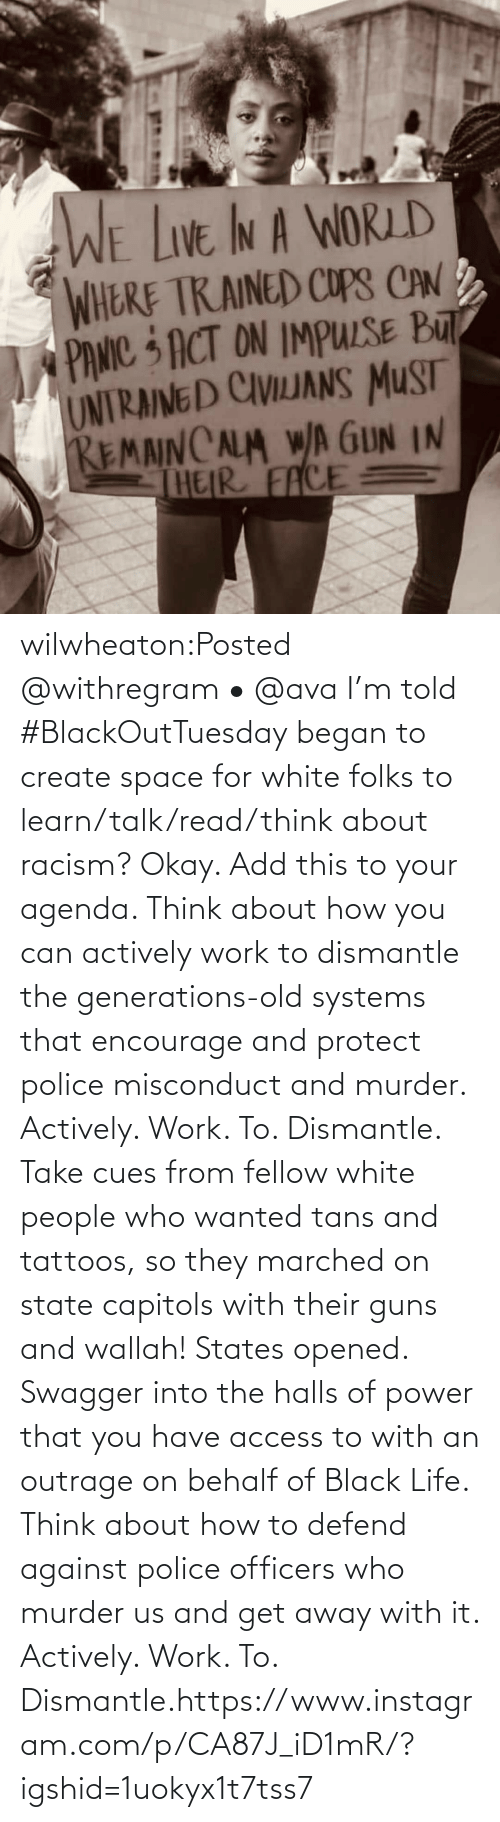 From: wilwheaton:Posted @withregram • @ava I'm told #BlackOutTuesday began to create space for white folks to learn/talk/read/think about racism? Okay. Add this to your agenda. Think about how you can actively work to dismantle the generations-old systems that encourage and protect police misconduct and murder. Actively. Work. To. Dismantle. Take cues from fellow white people who wanted tans and tattoos, so they marched on state capitols with their guns and wallah! States opened. Swagger into the halls of power that you have access to with an outrage on behalf of Black Life. Think about how to defend against police officers who murder us and get away with it. Actively. Work. To. Dismantle.https://www.instagram.com/p/CA87J_iD1mR/?igshid=1uokyx1t7tss7